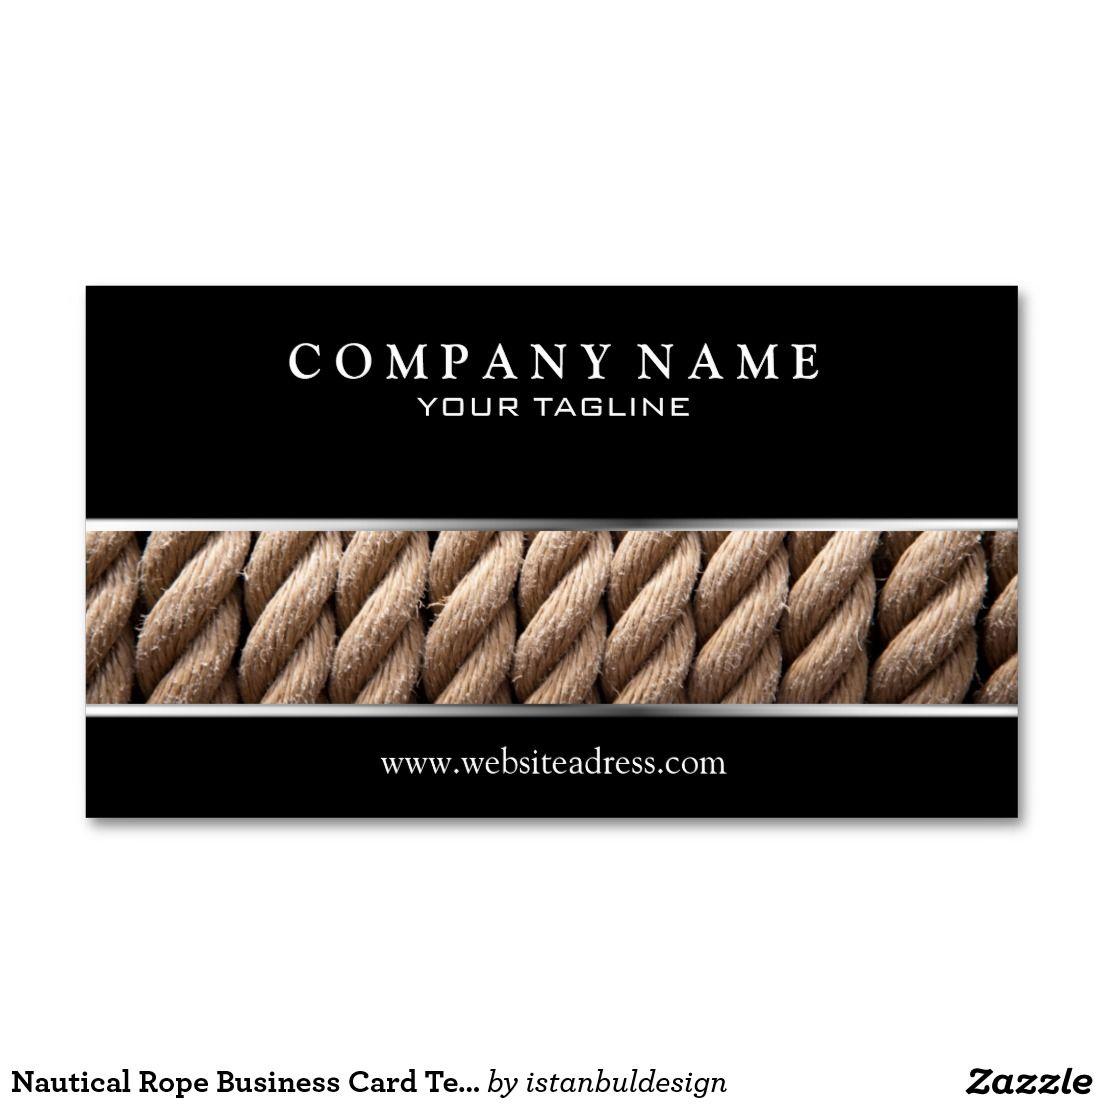 Nautical Rope Business Card Template | Nautical Business Cards ...